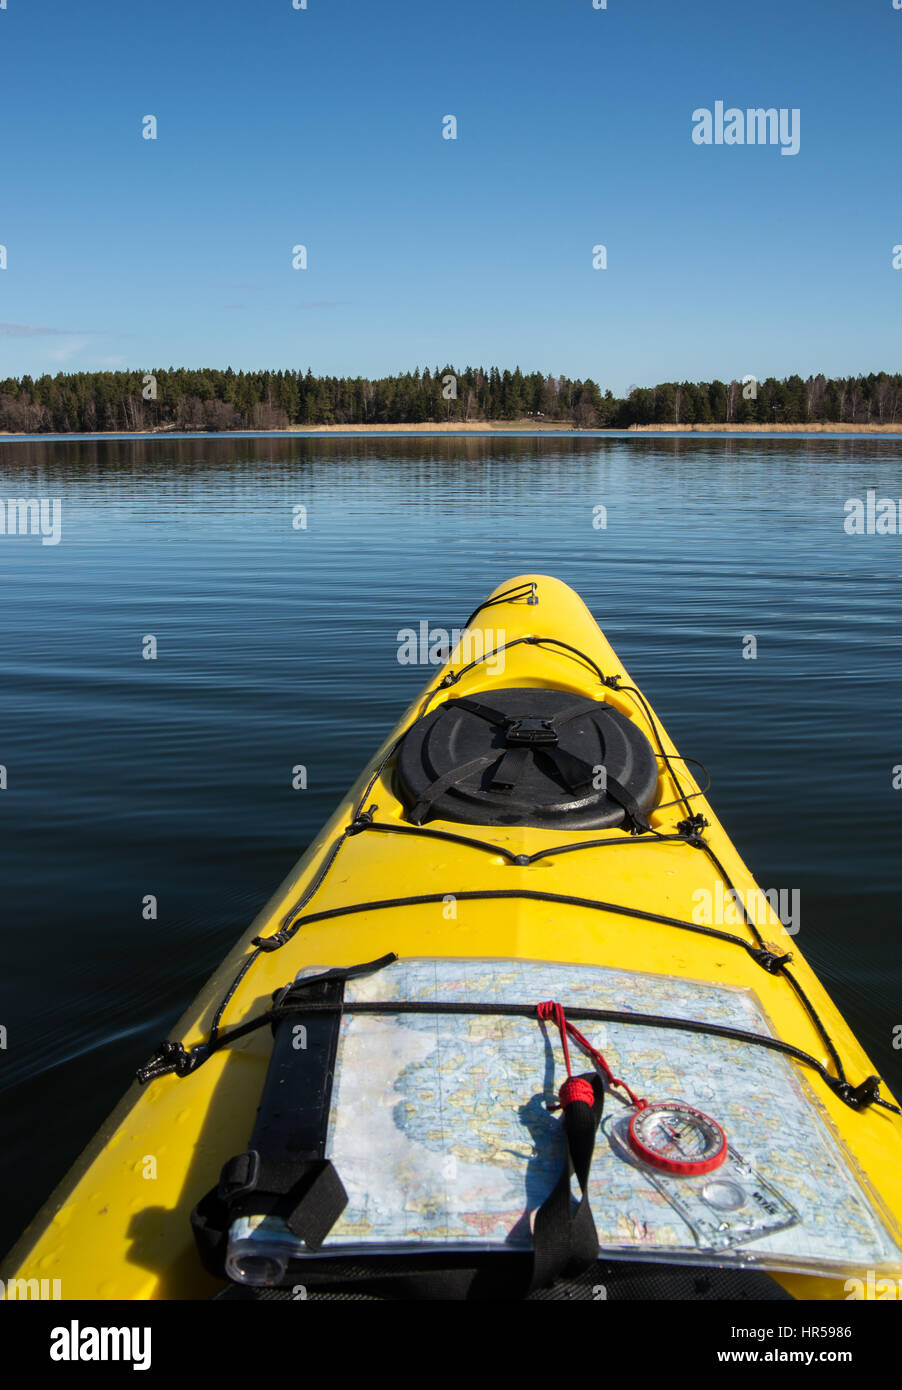 Seakayaking in Stockholm archipelago, Sweden - Stock Image